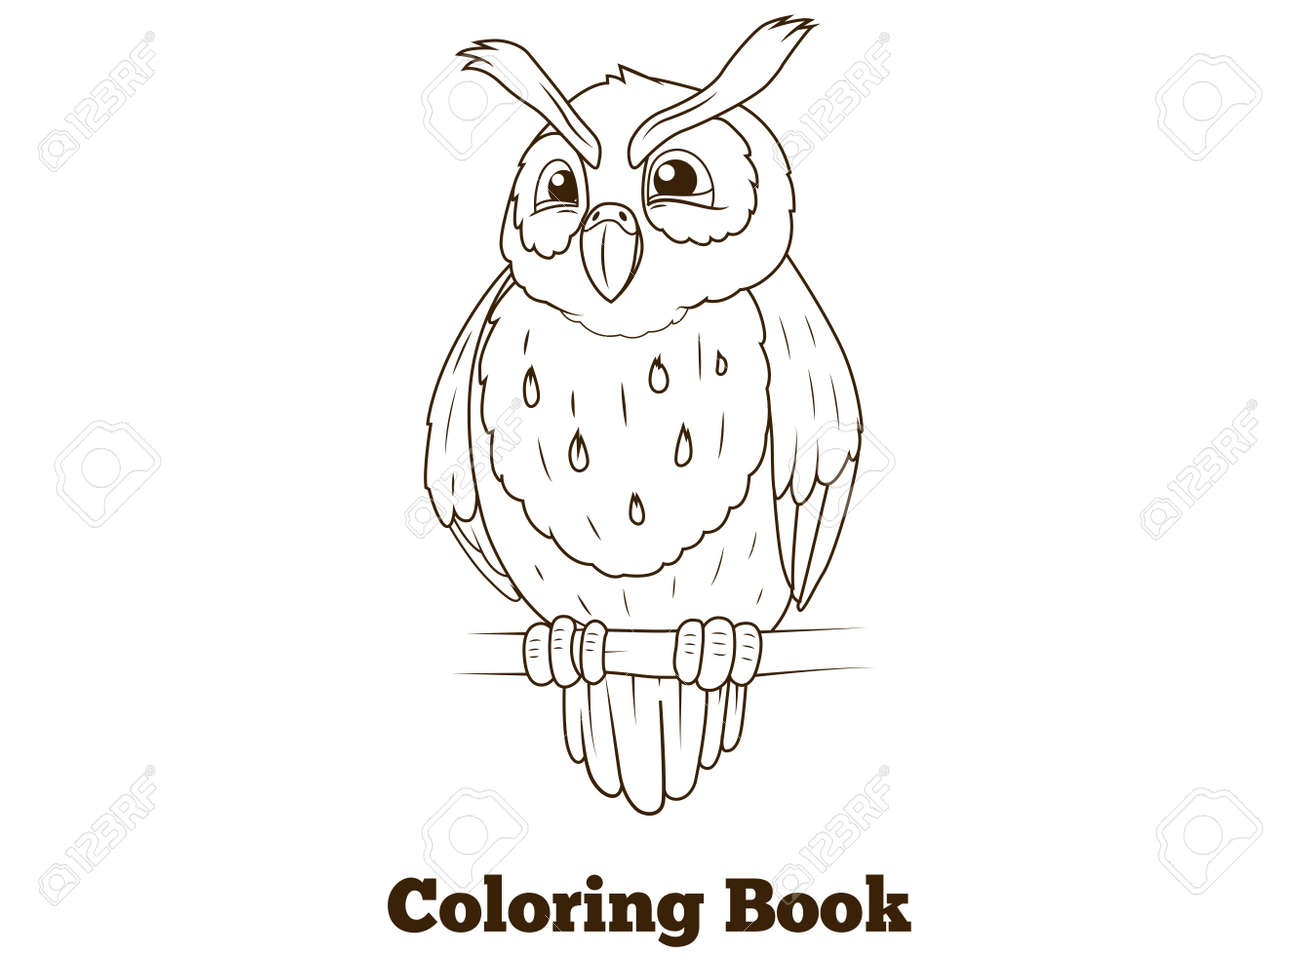 Coloring Book Forest Owl Bird Cartoon For Children Vector Illustration Stock